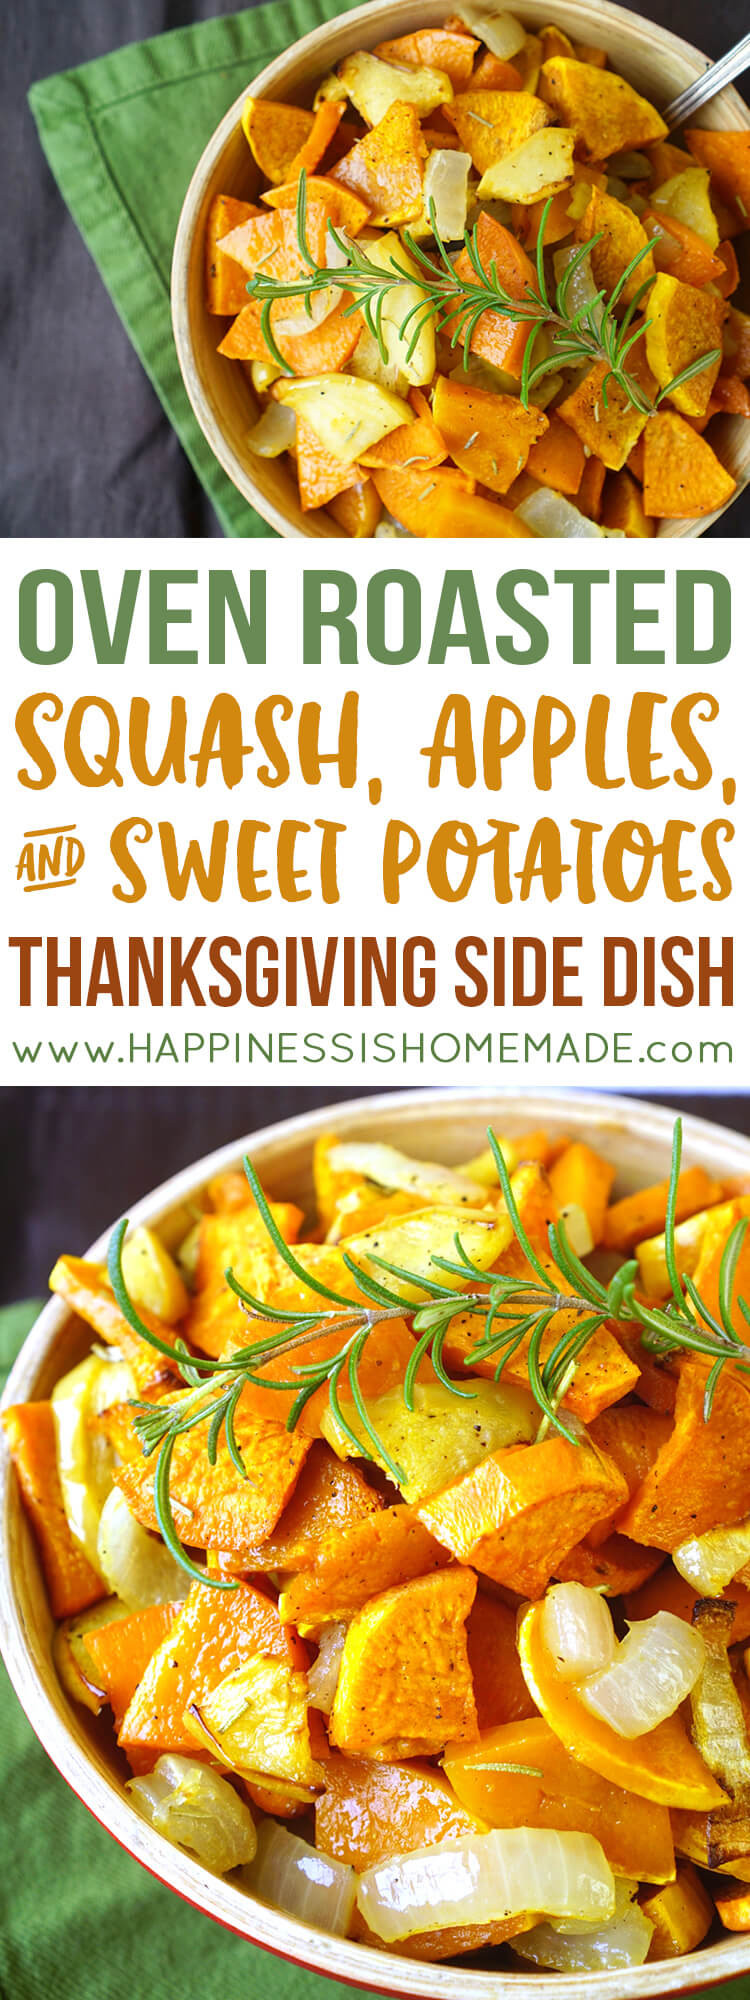 Thanksgiving Sweet Potatoes Recipes Healthy  Roasted Sweet Potatoes Squash & Apples Happiness is